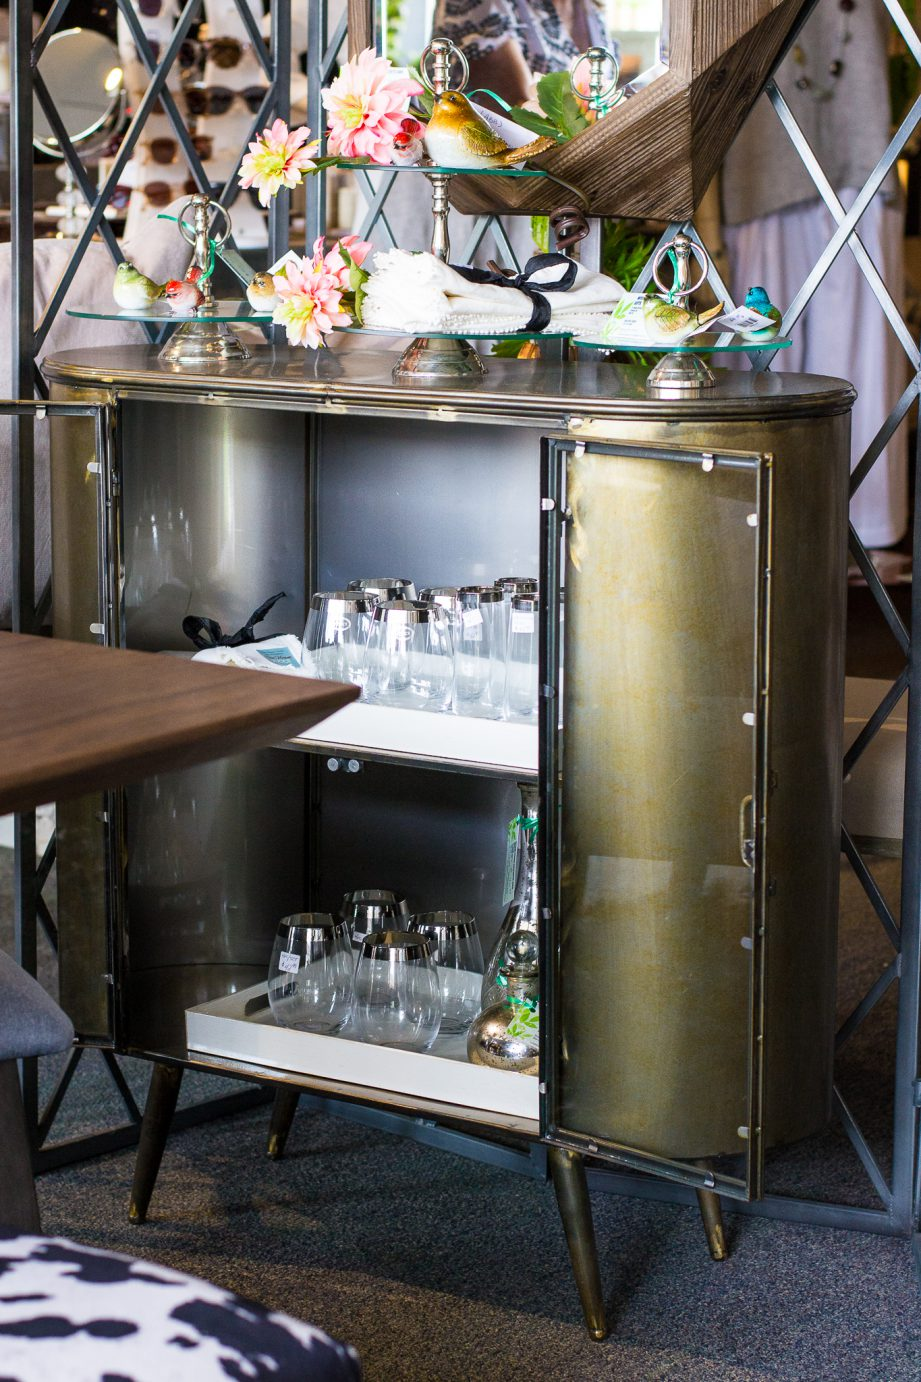 A mid-century shelving unit filled with glassware at Wish Home Accents.